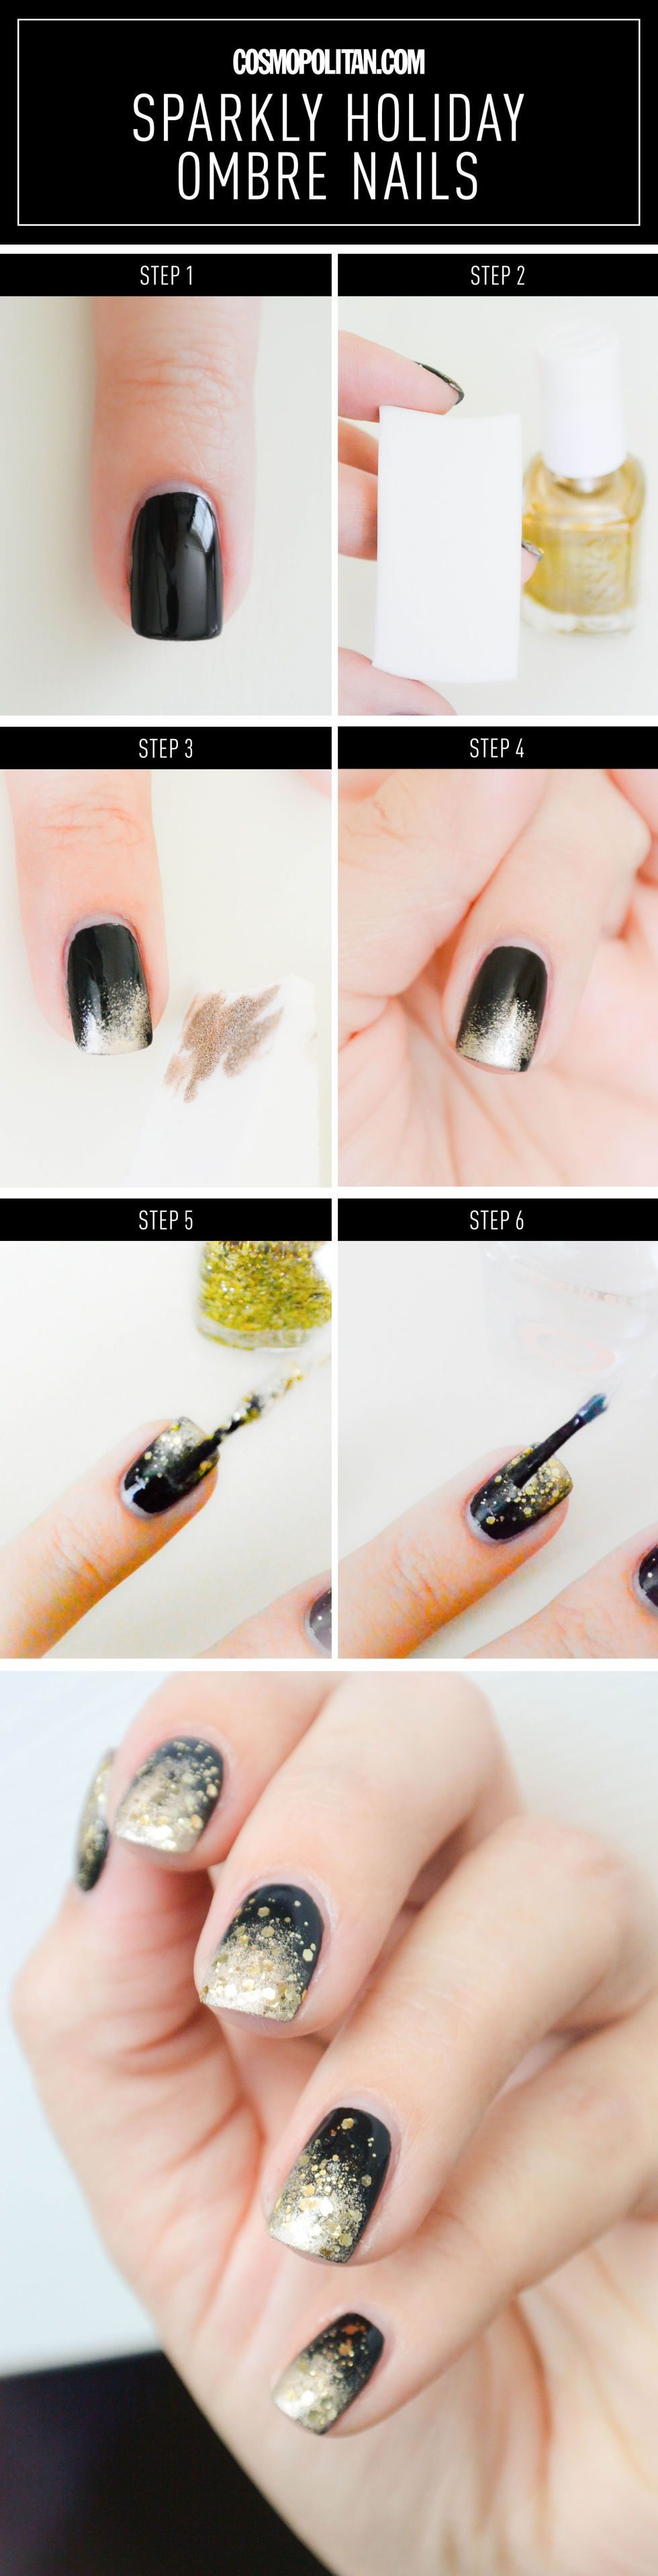 Nail Art How-To: Sparkly Black and Gold Ombr Mani | Negle ...